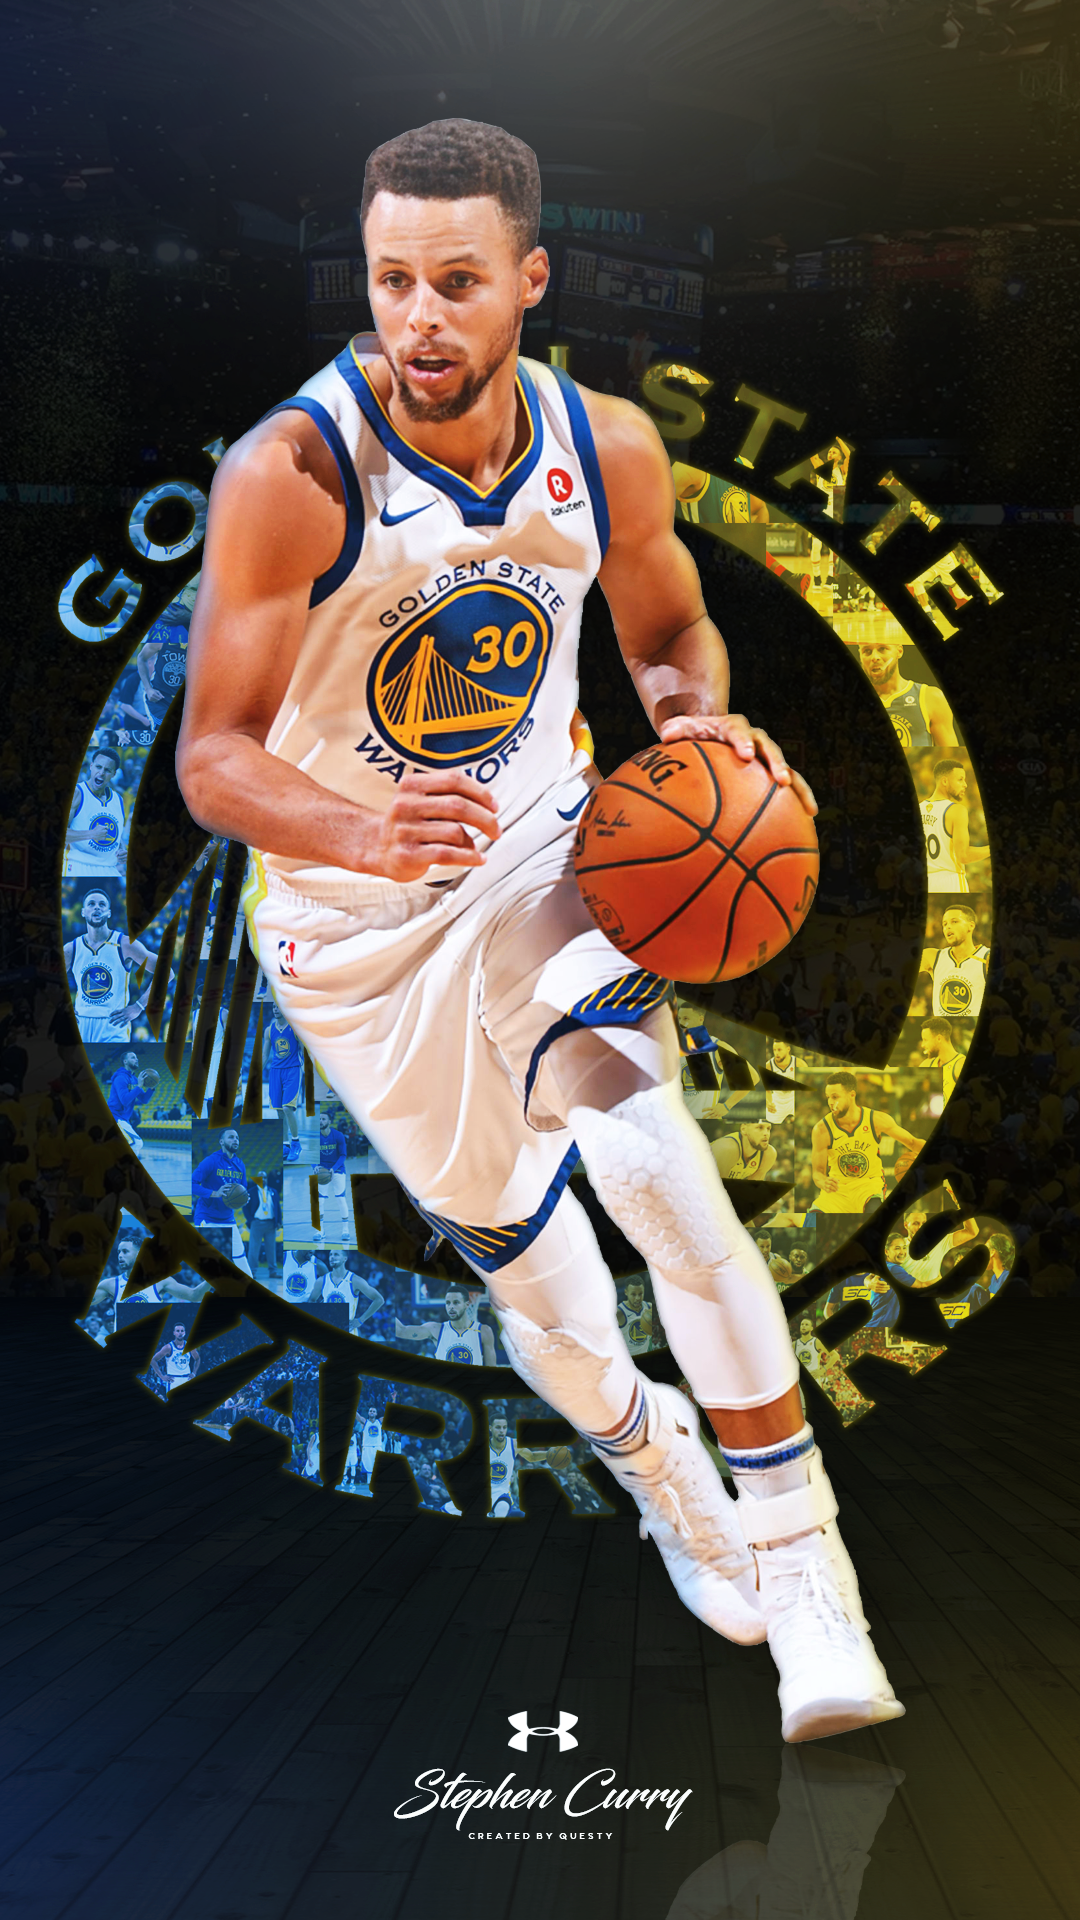 Stephen Curry Wallpaper 1080p » Hupages » Download Iphone